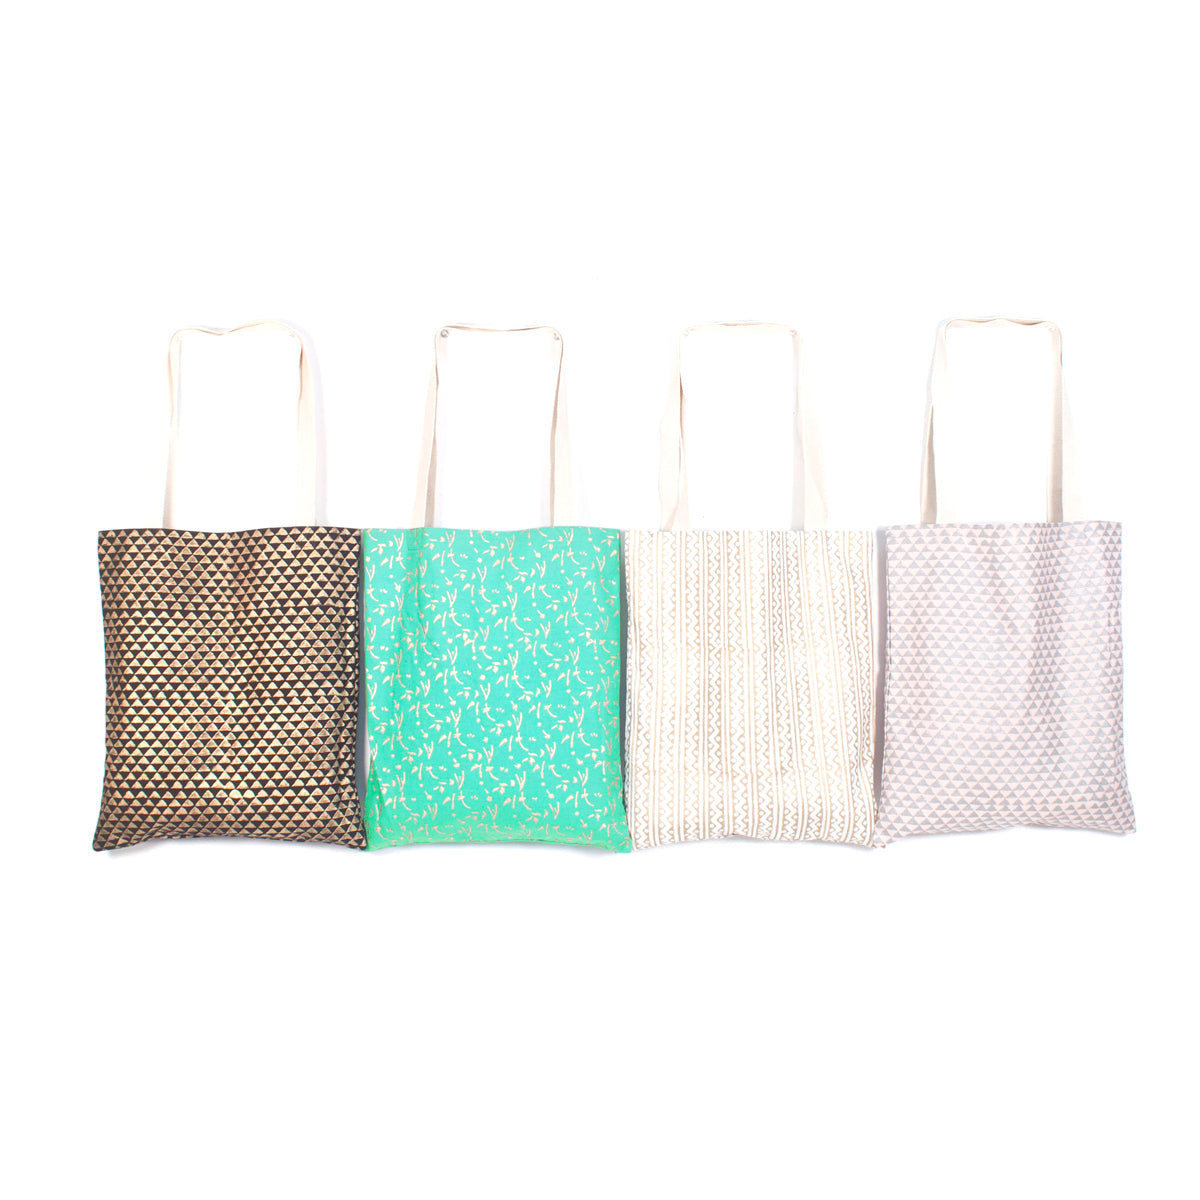 Metallic Block Print Shoppers - Pack of 4, Assorted